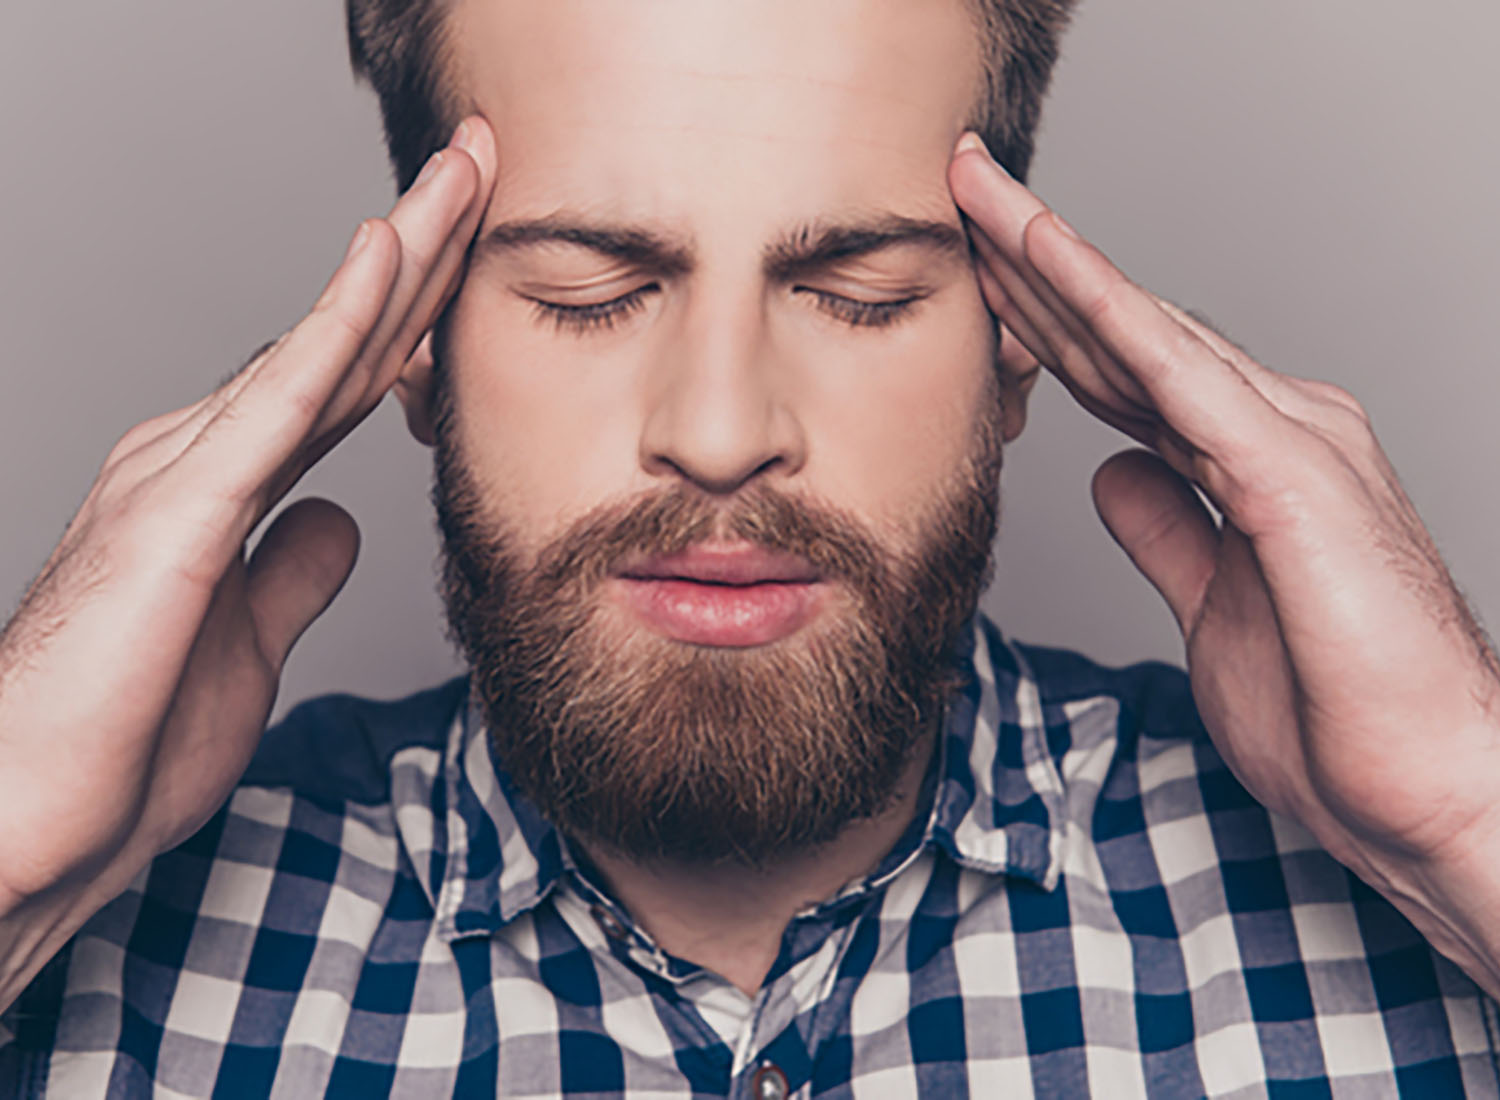 POPPERS AND MIGRAINES : HOW TO AVOID HEADACHES